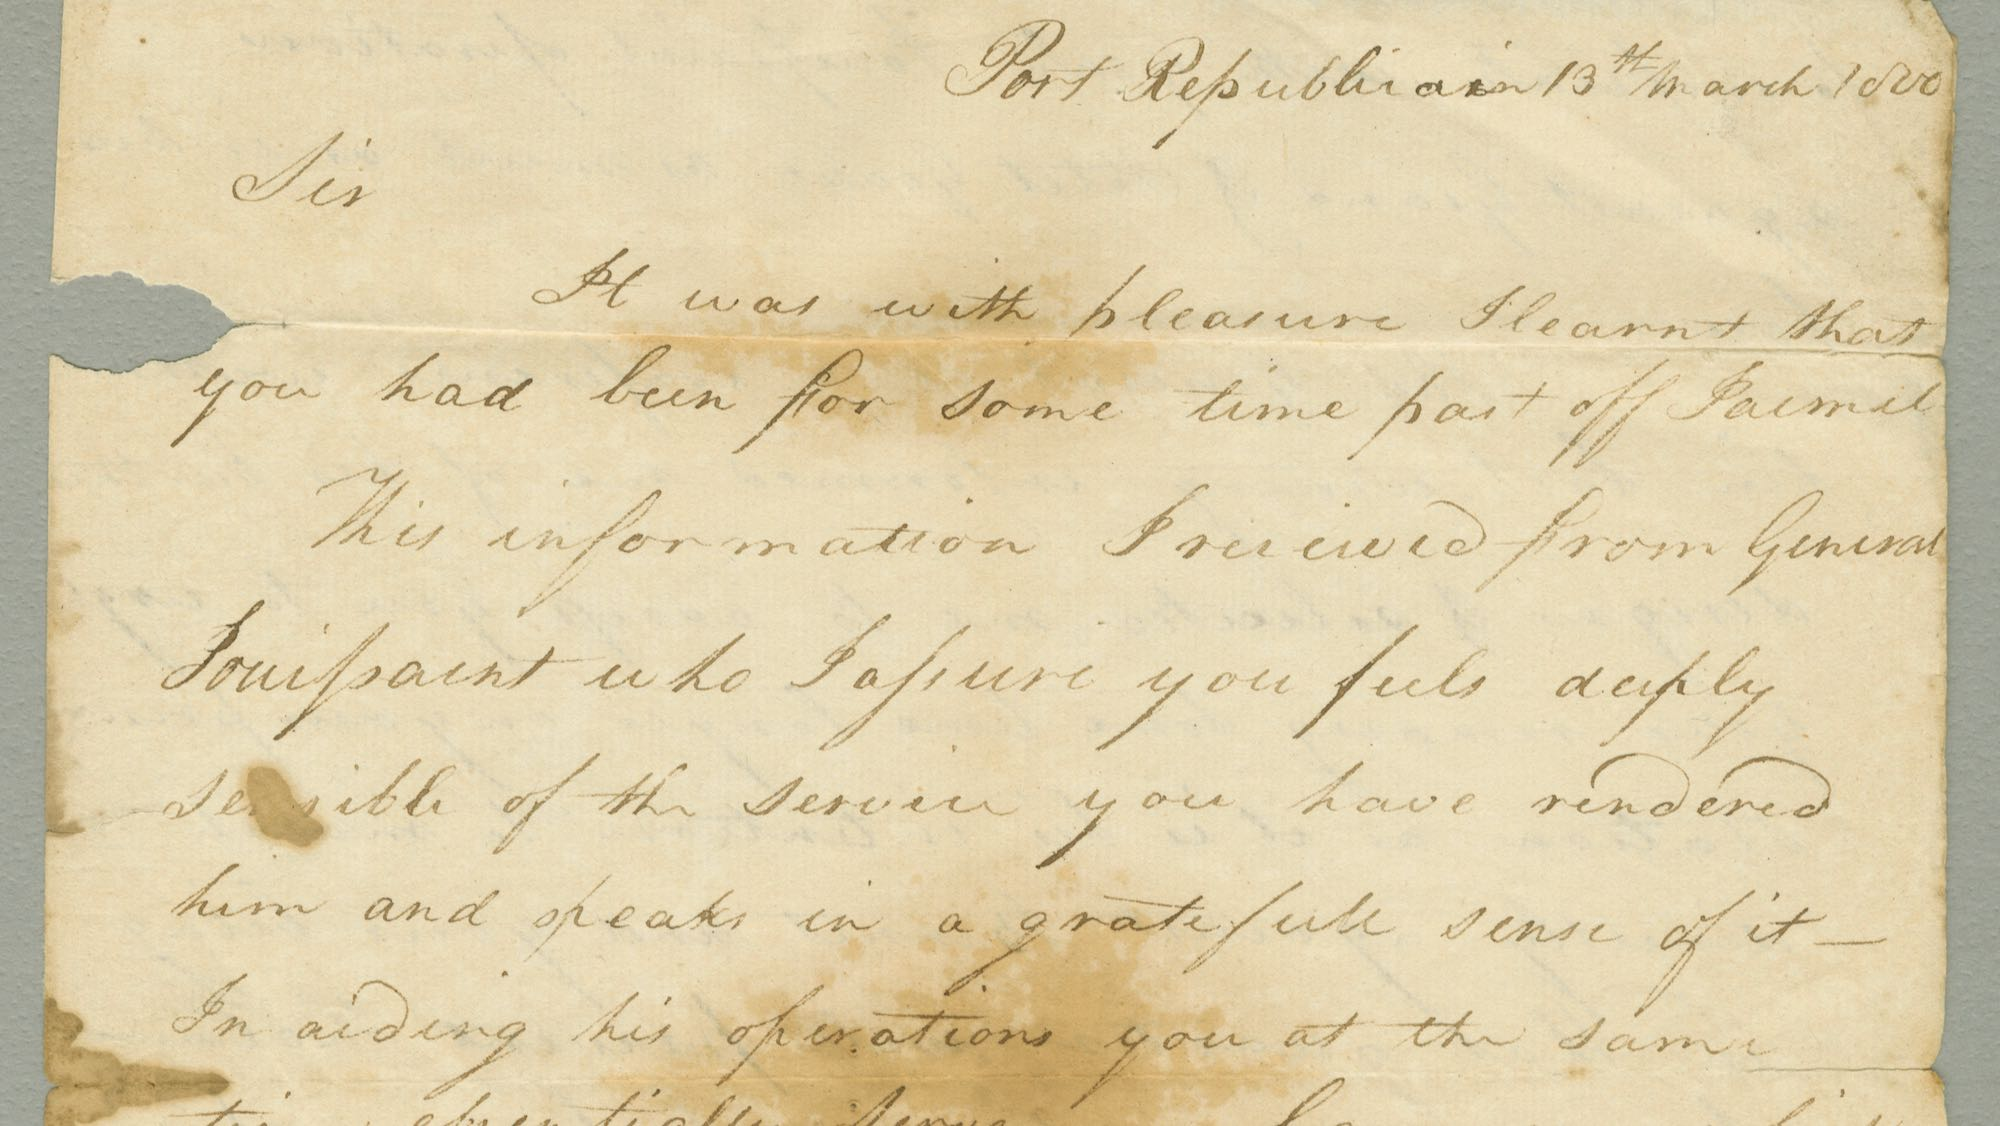 image of a document from the Correspondence of Commodore Oliver Hazard Perry